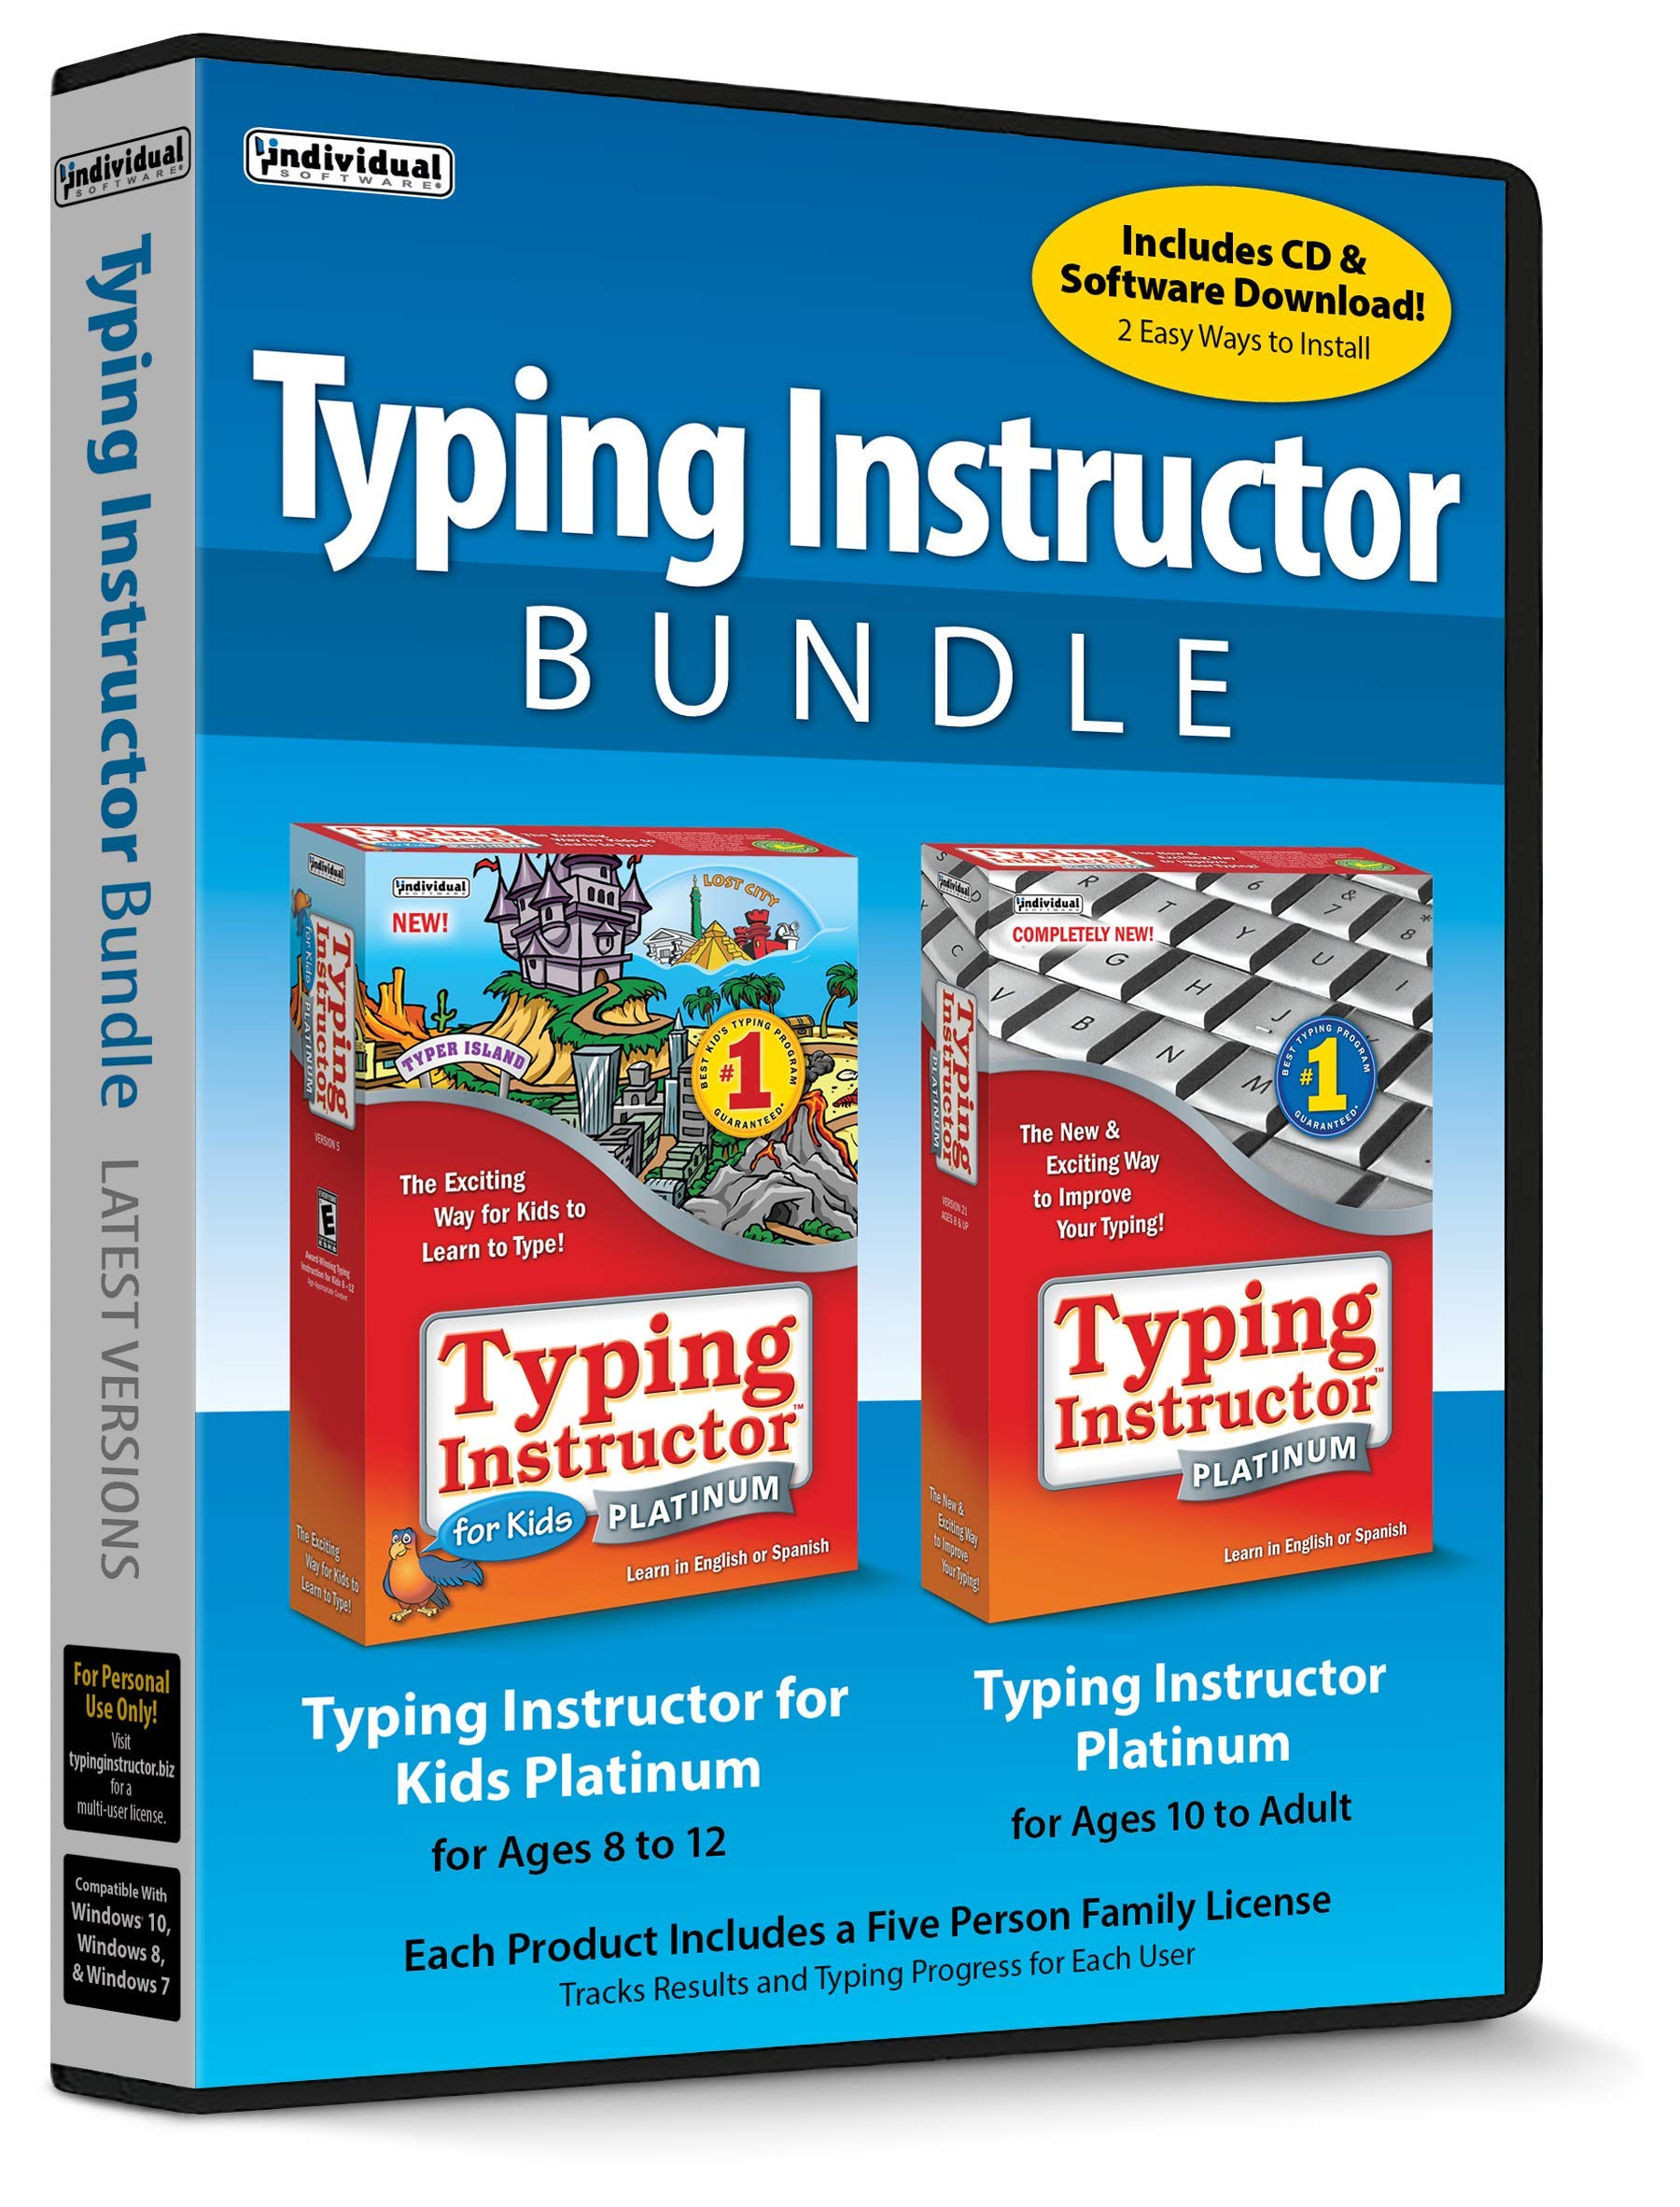 Typing Instructor Bundle by Individual Software